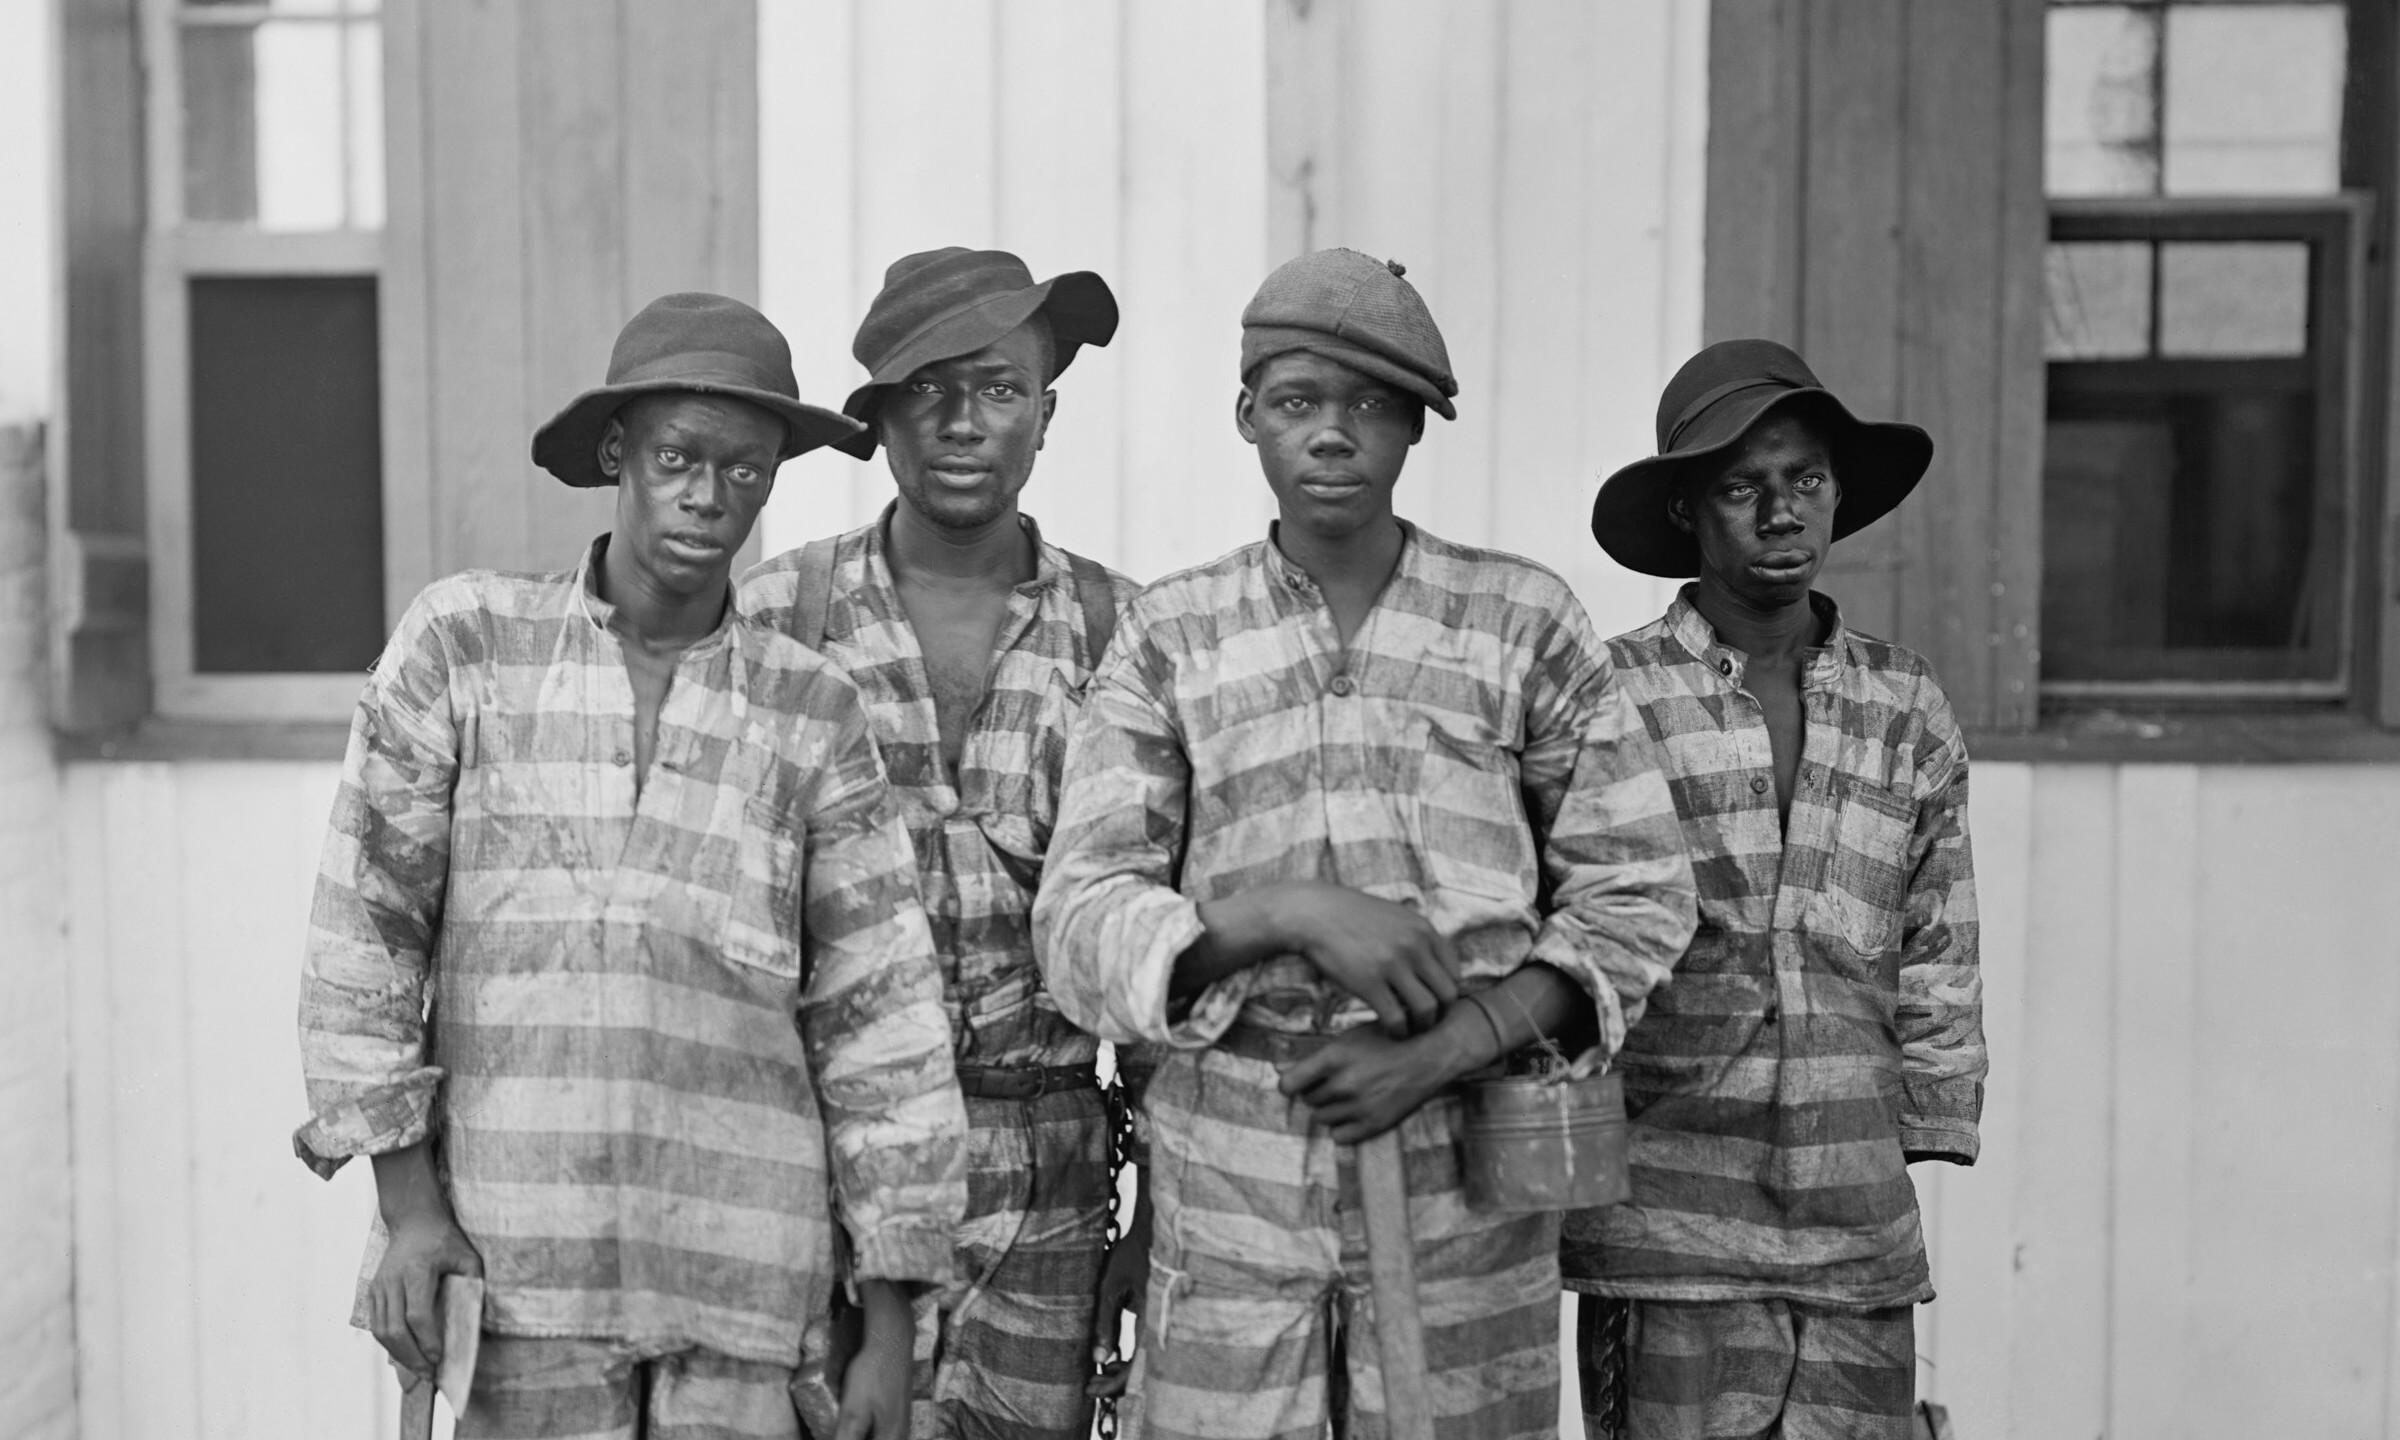 Four African American youths in a Southern chain gang. Southern jails made money leasing convicts for forced labor in the Jim Crow South. Circa. 1900